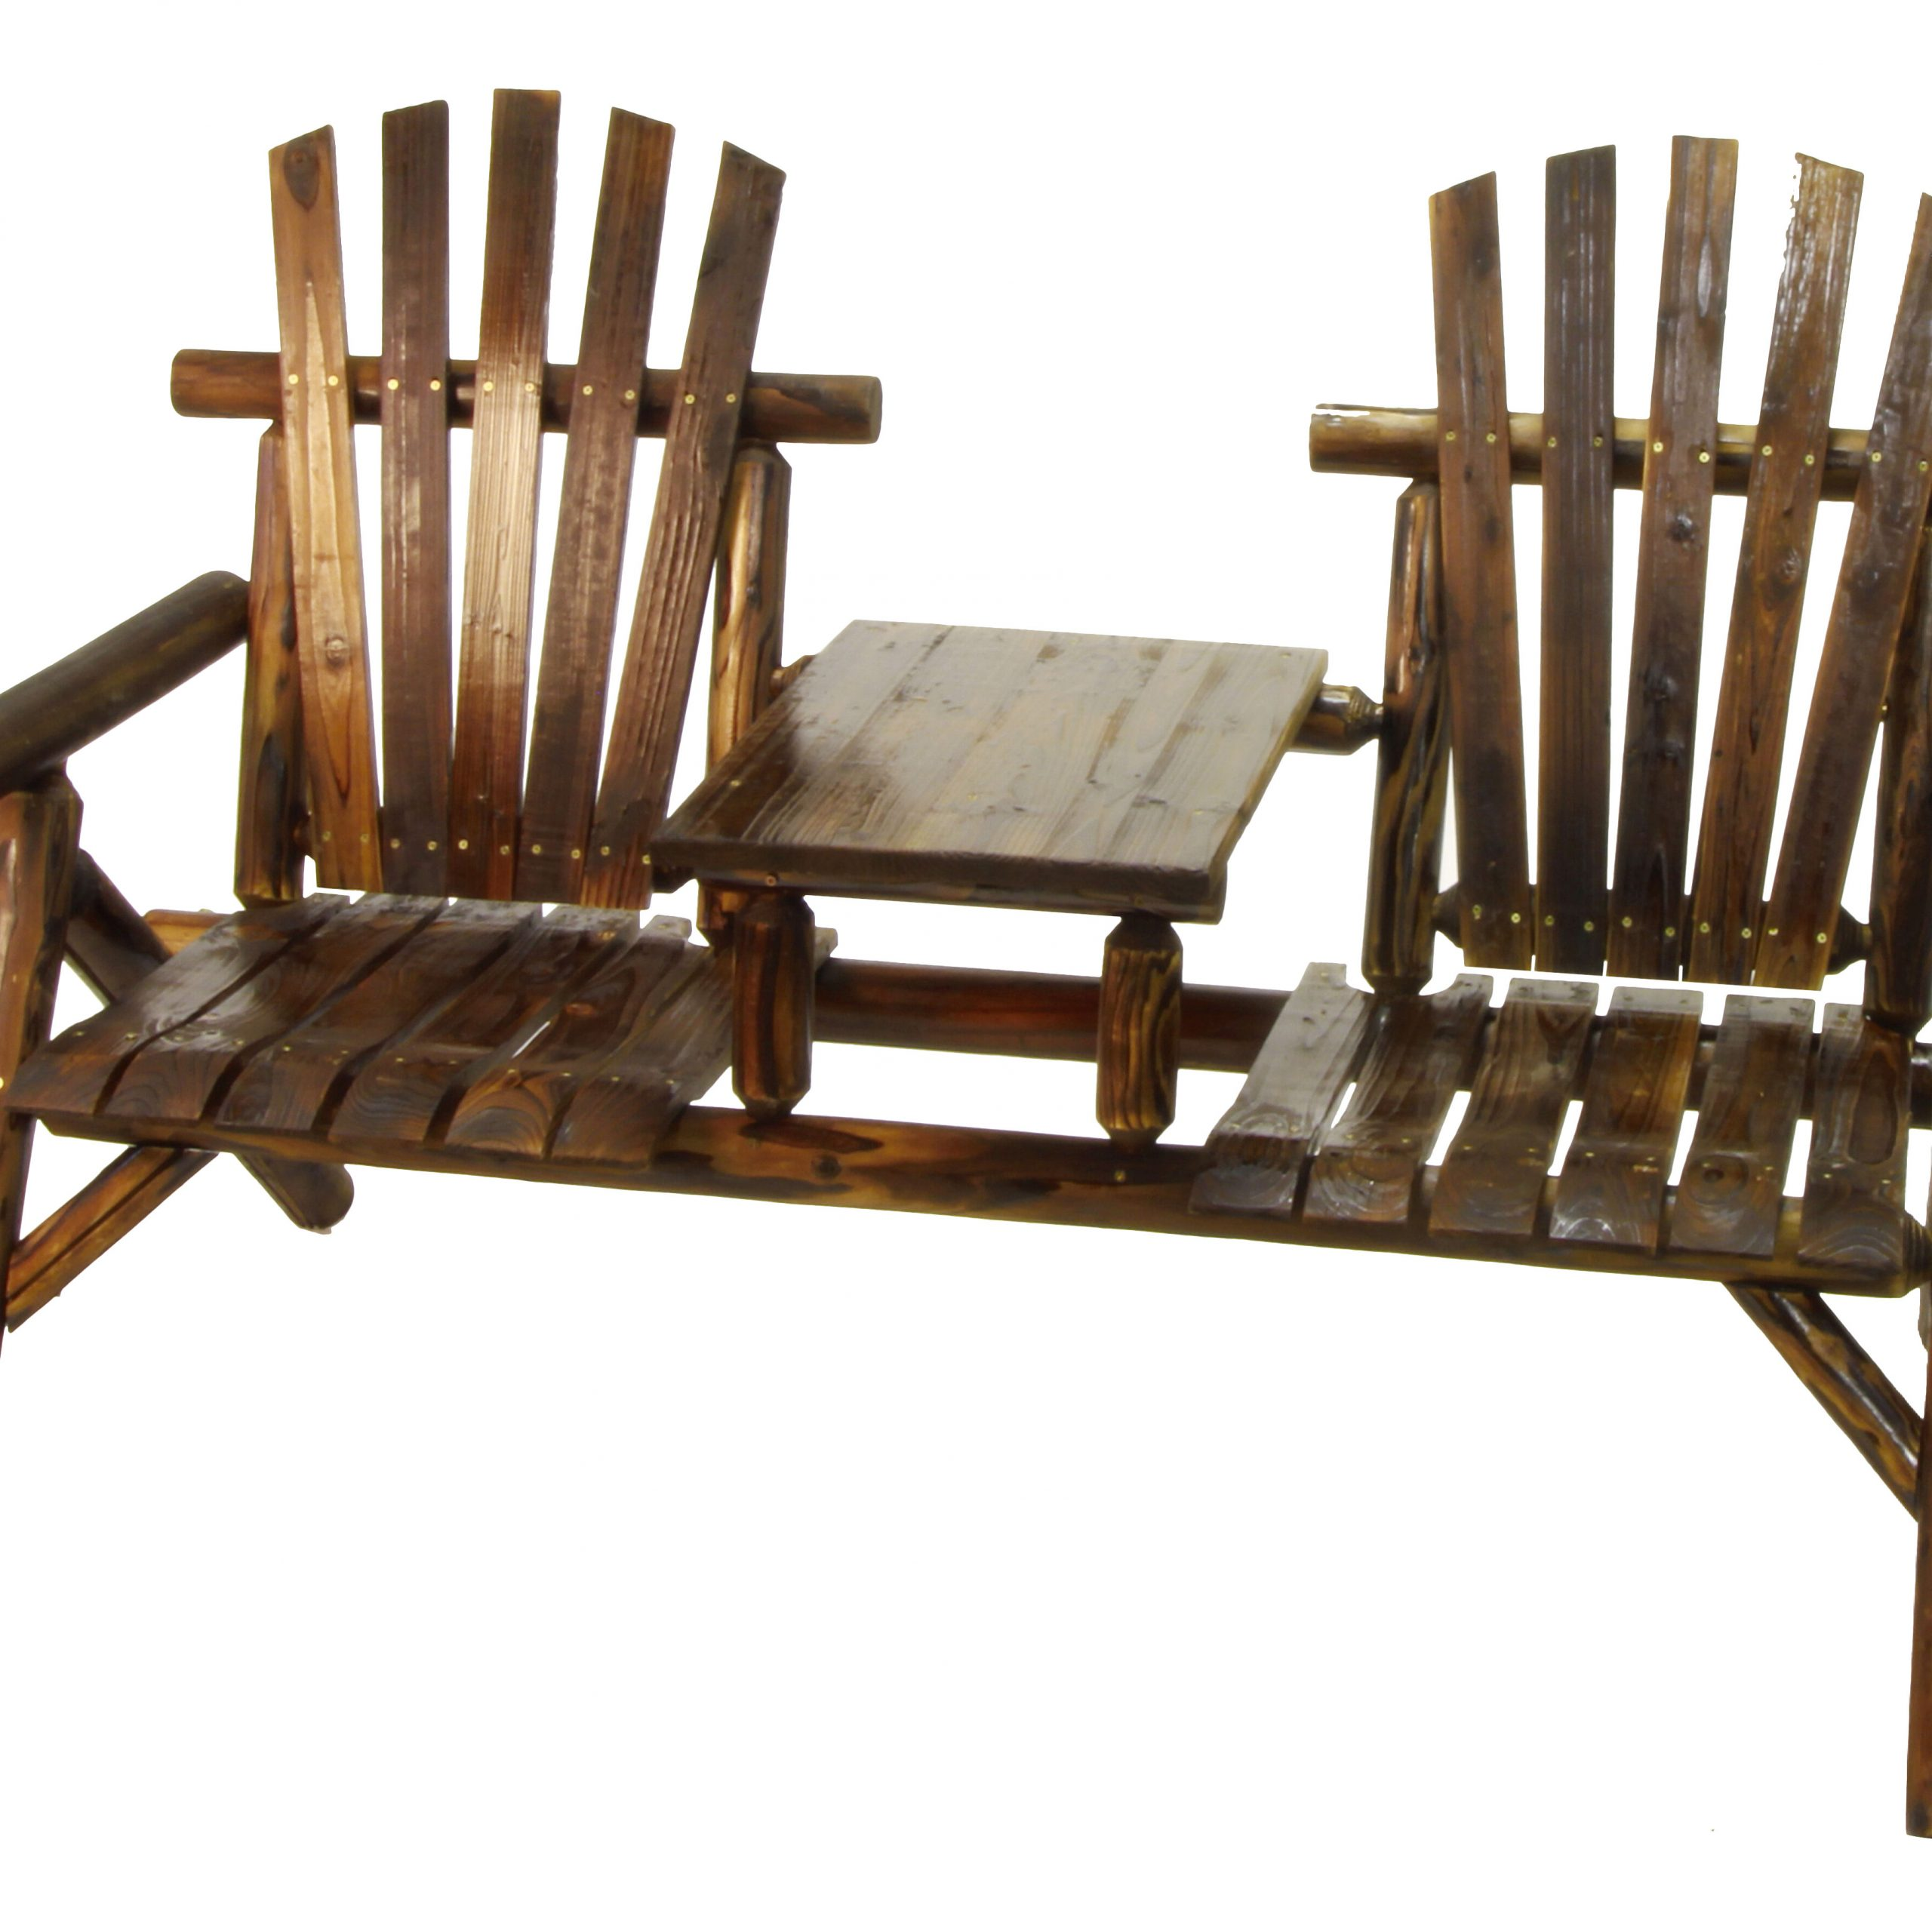 Argonne 2 Seat Fir Wood Tete A Tete Bench For Most Popular Lublin Wicker Tete A Tete Benches (View 9 of 30)